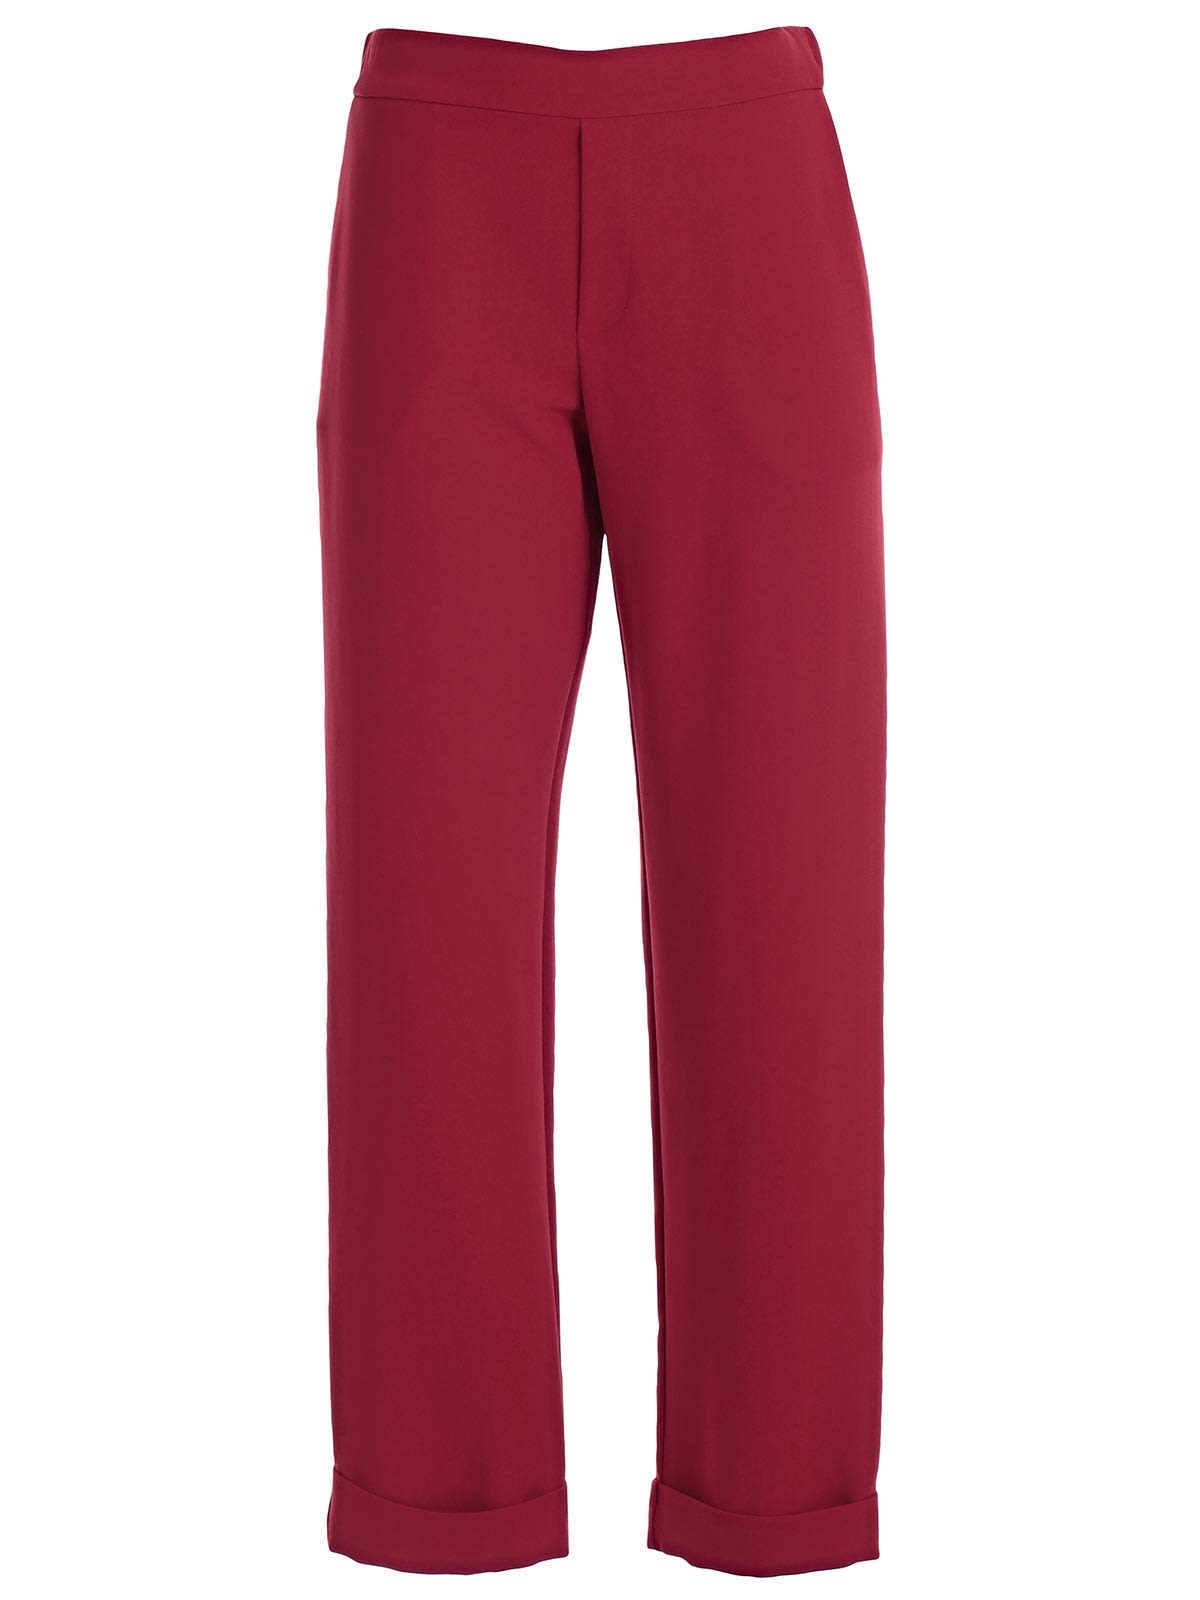 P.a.r.o.s.h. Skinny Trousers